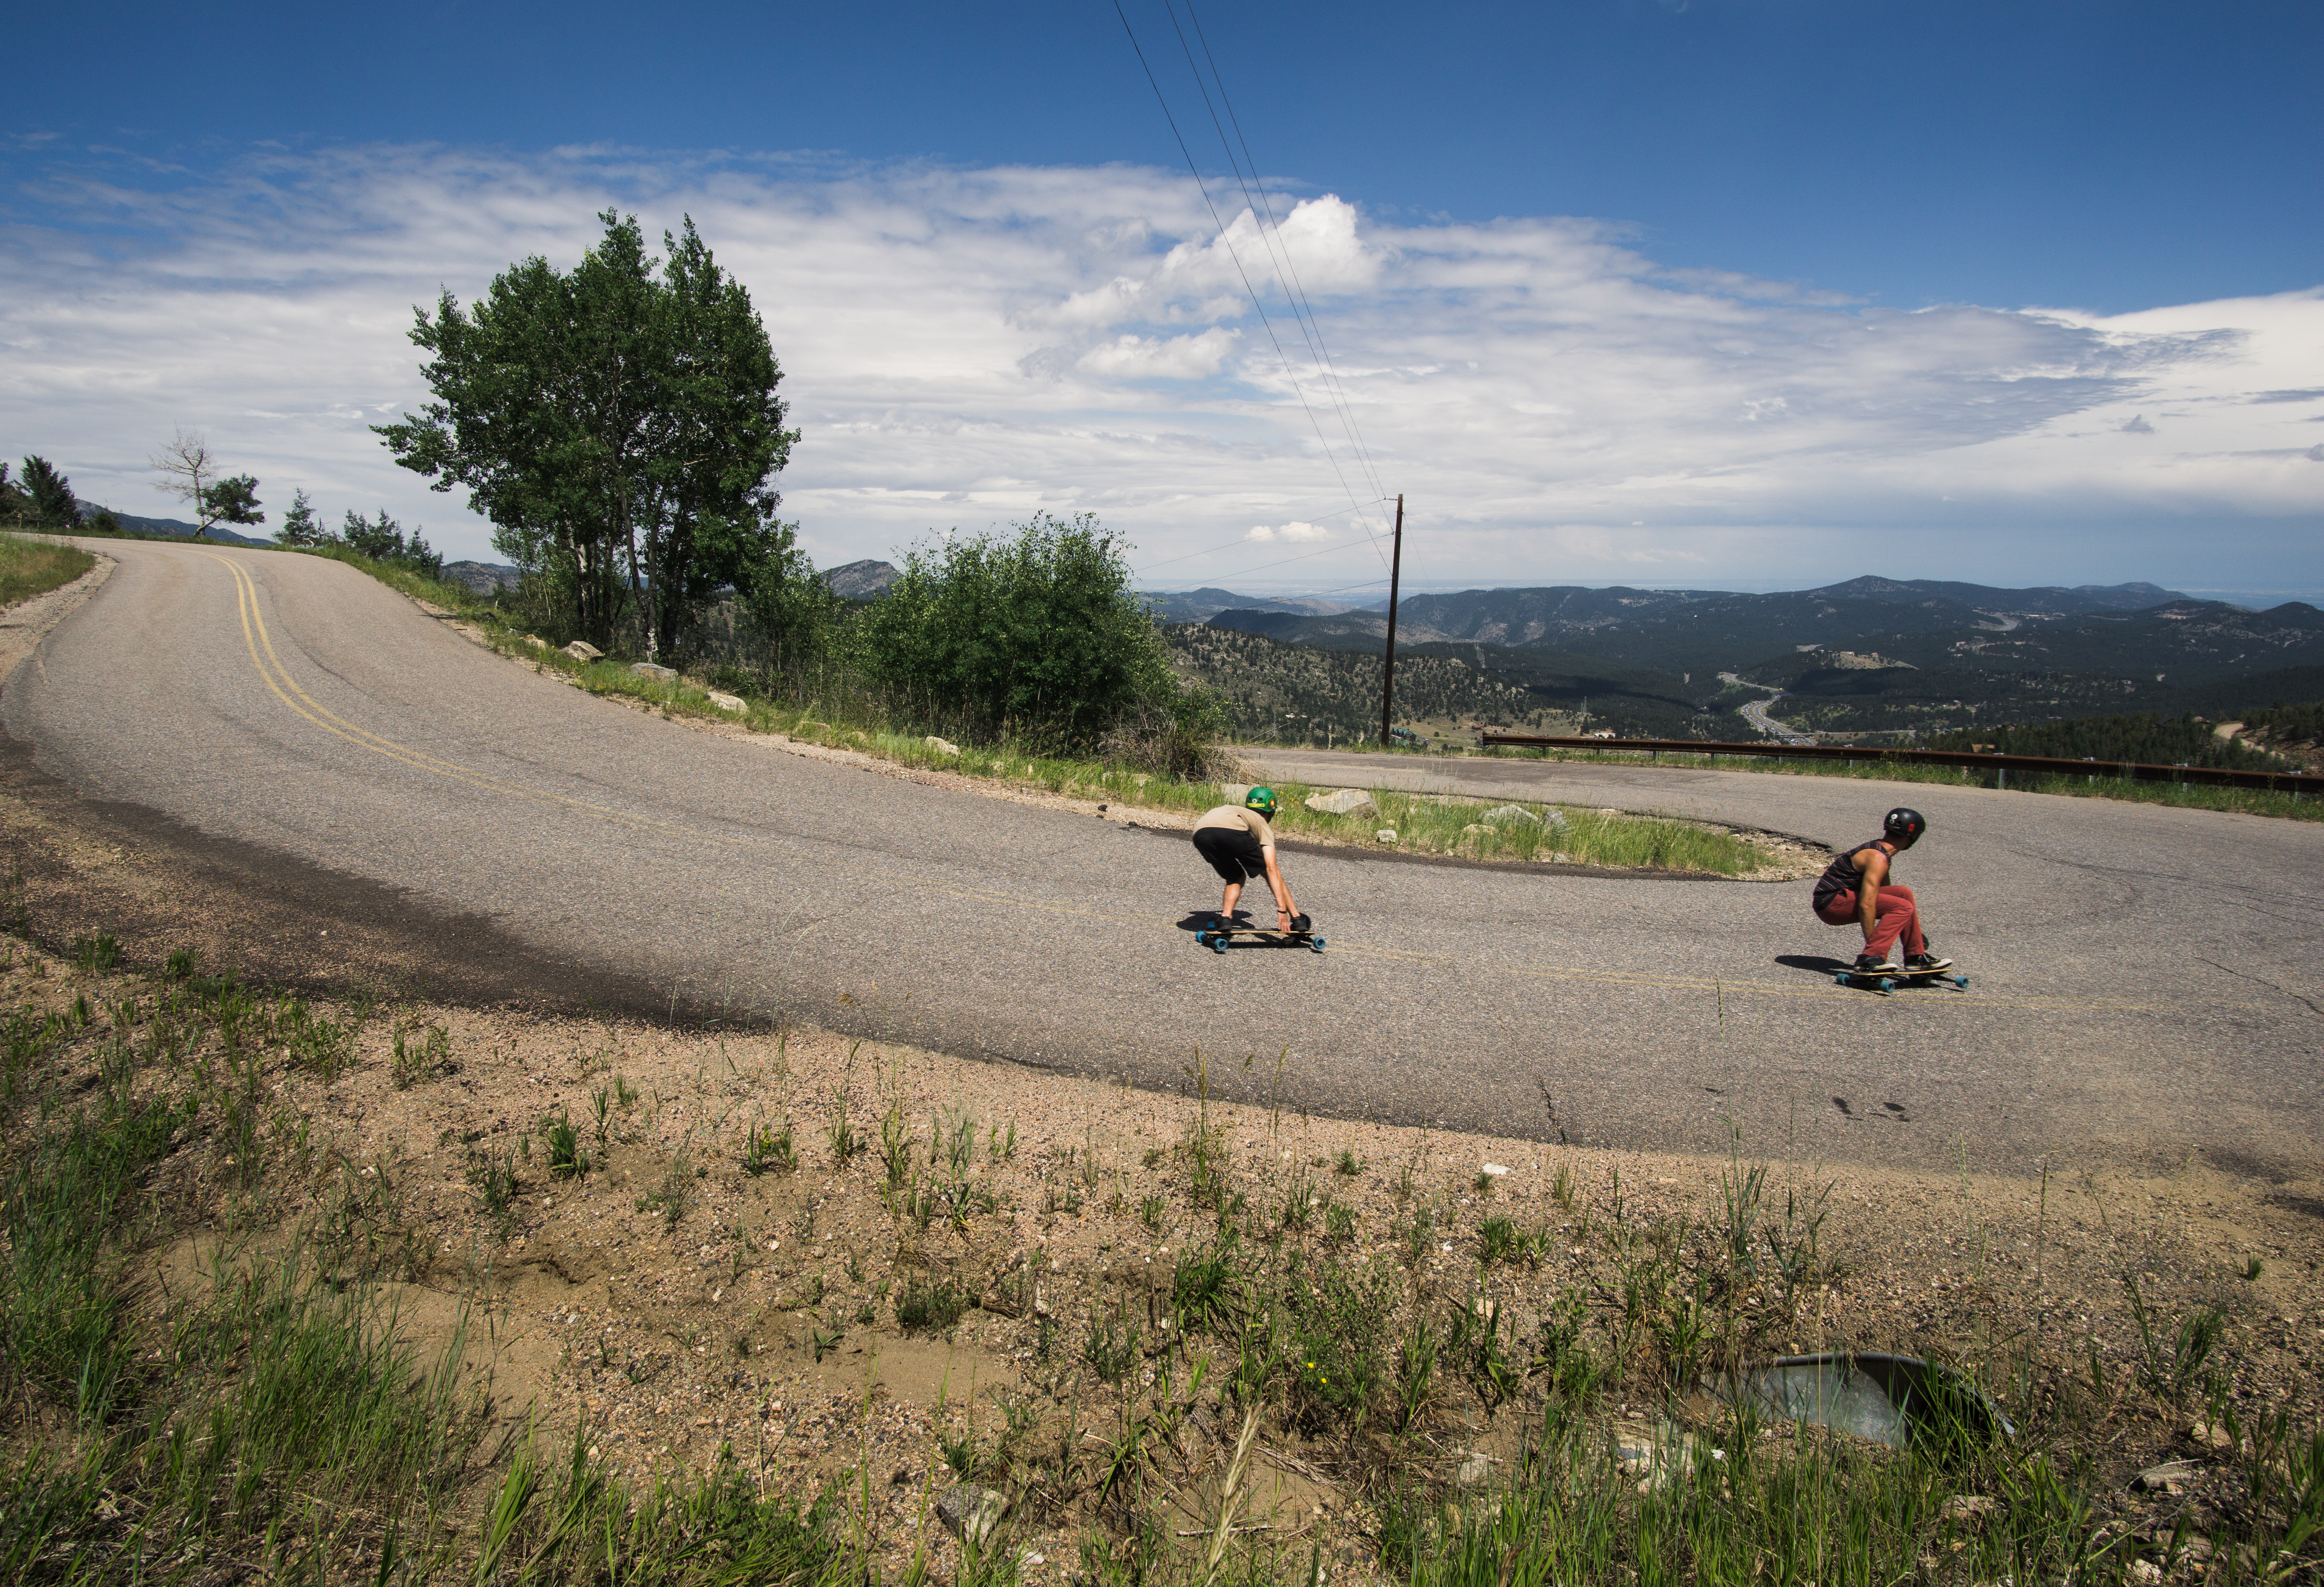 two people on skateboards